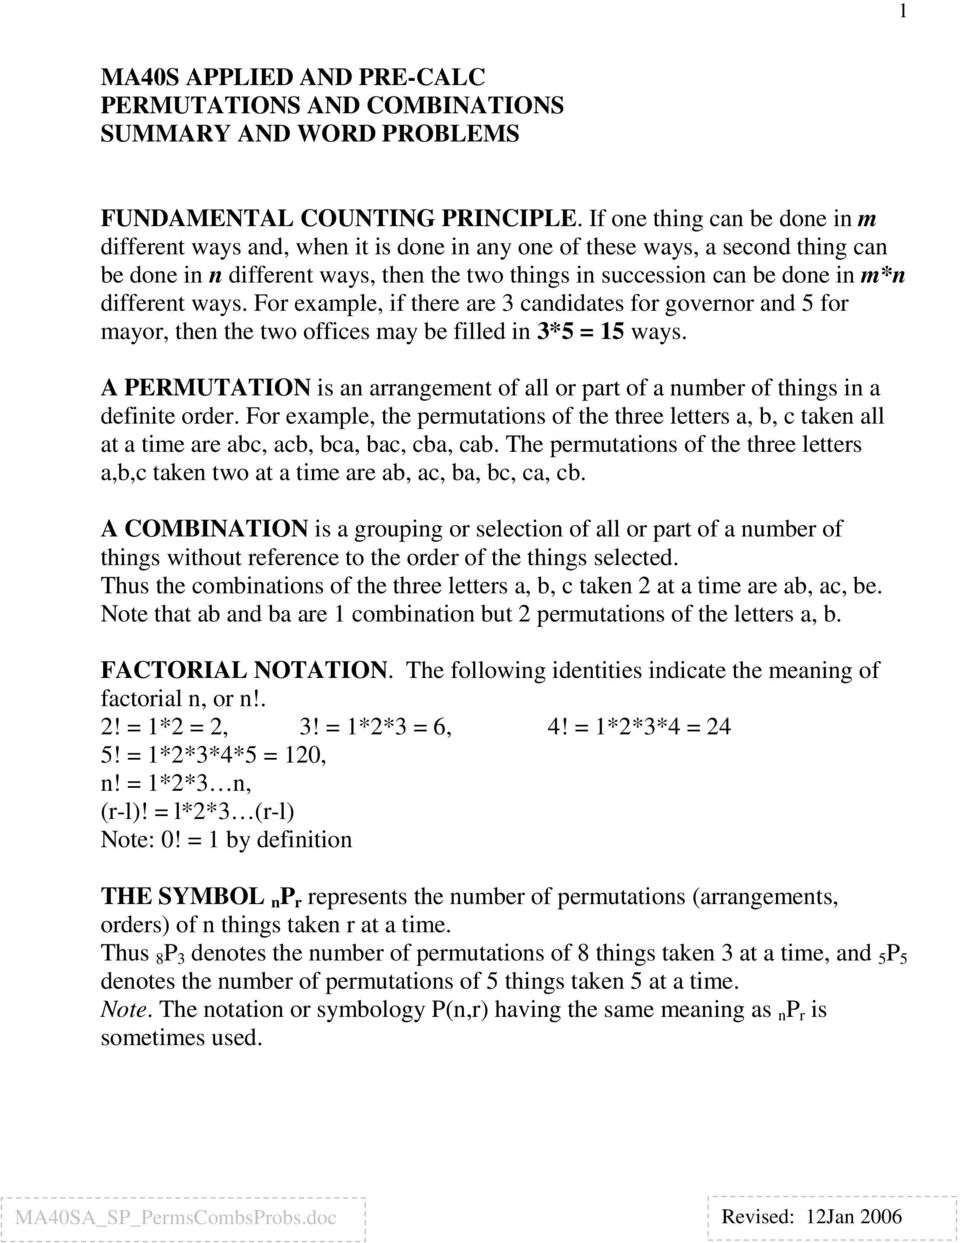 worksheet Combinations And Permutations Worksheet ma40s applied and pre calc permutations combinations summary different ways for example if there are 3 candidates governor 5 for